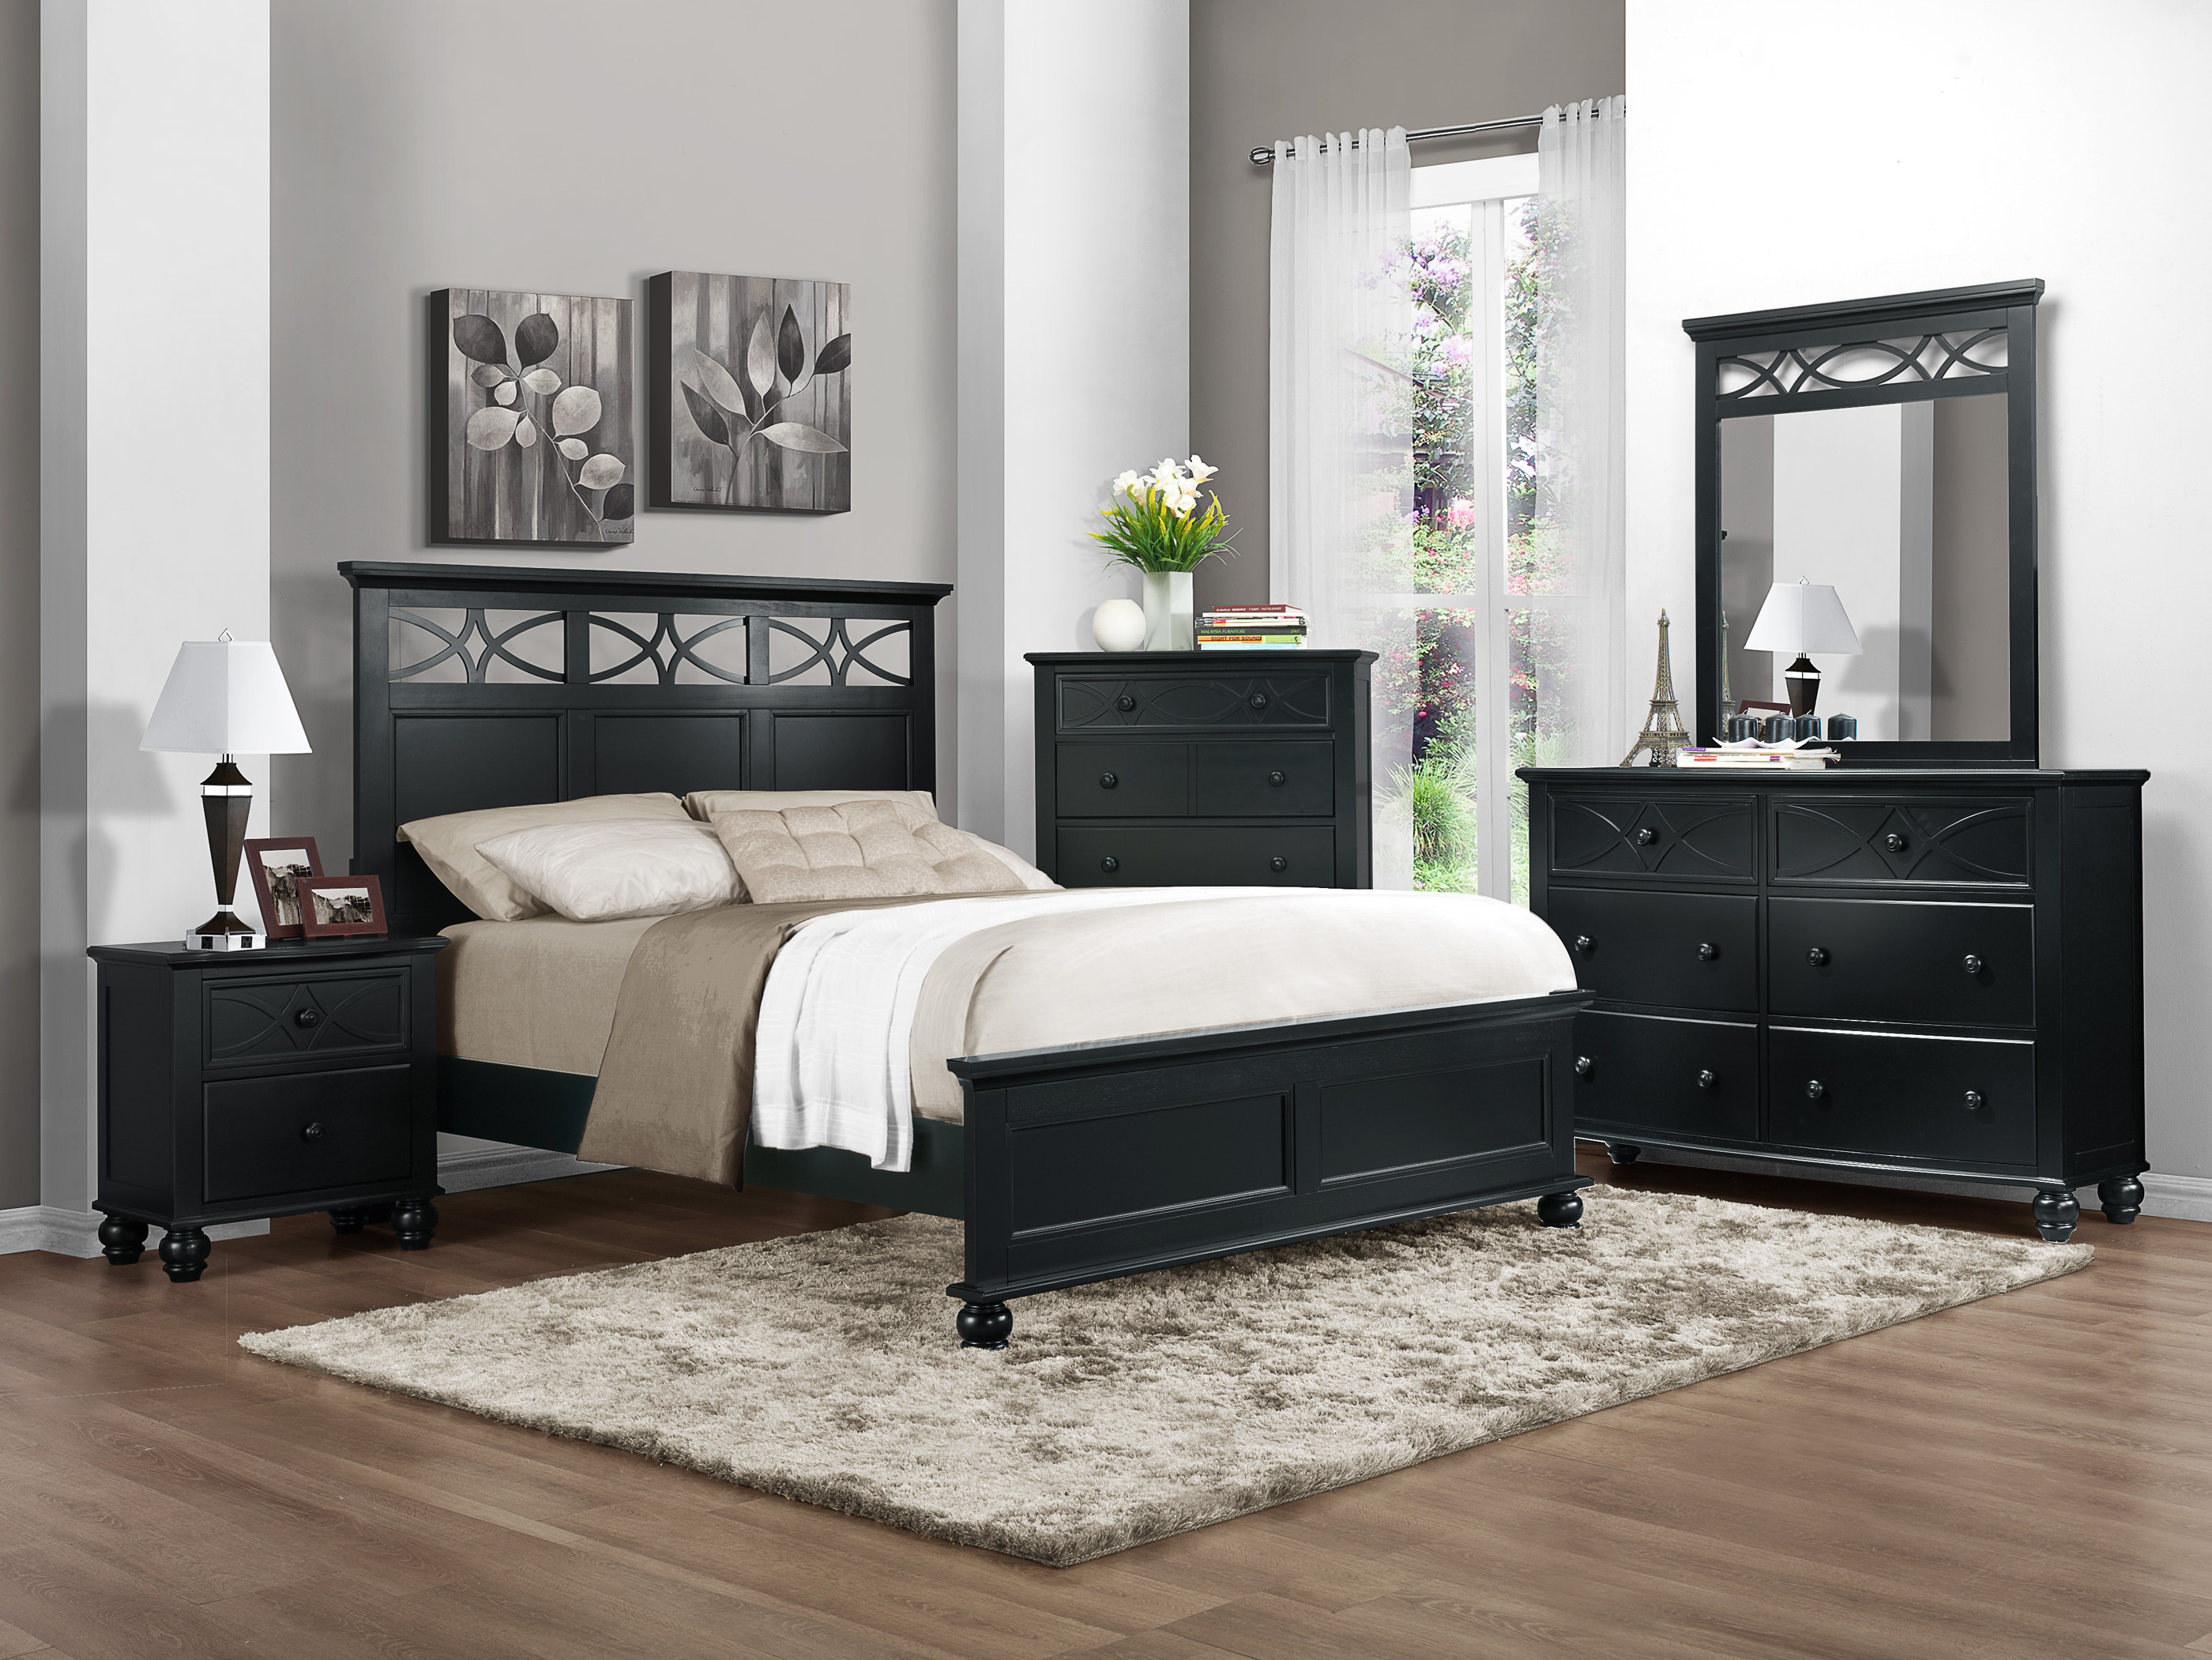 black bedroom furniture sets king | Homelegance Sanibel Black King 5pc Bedroom Set Dallas TX ...